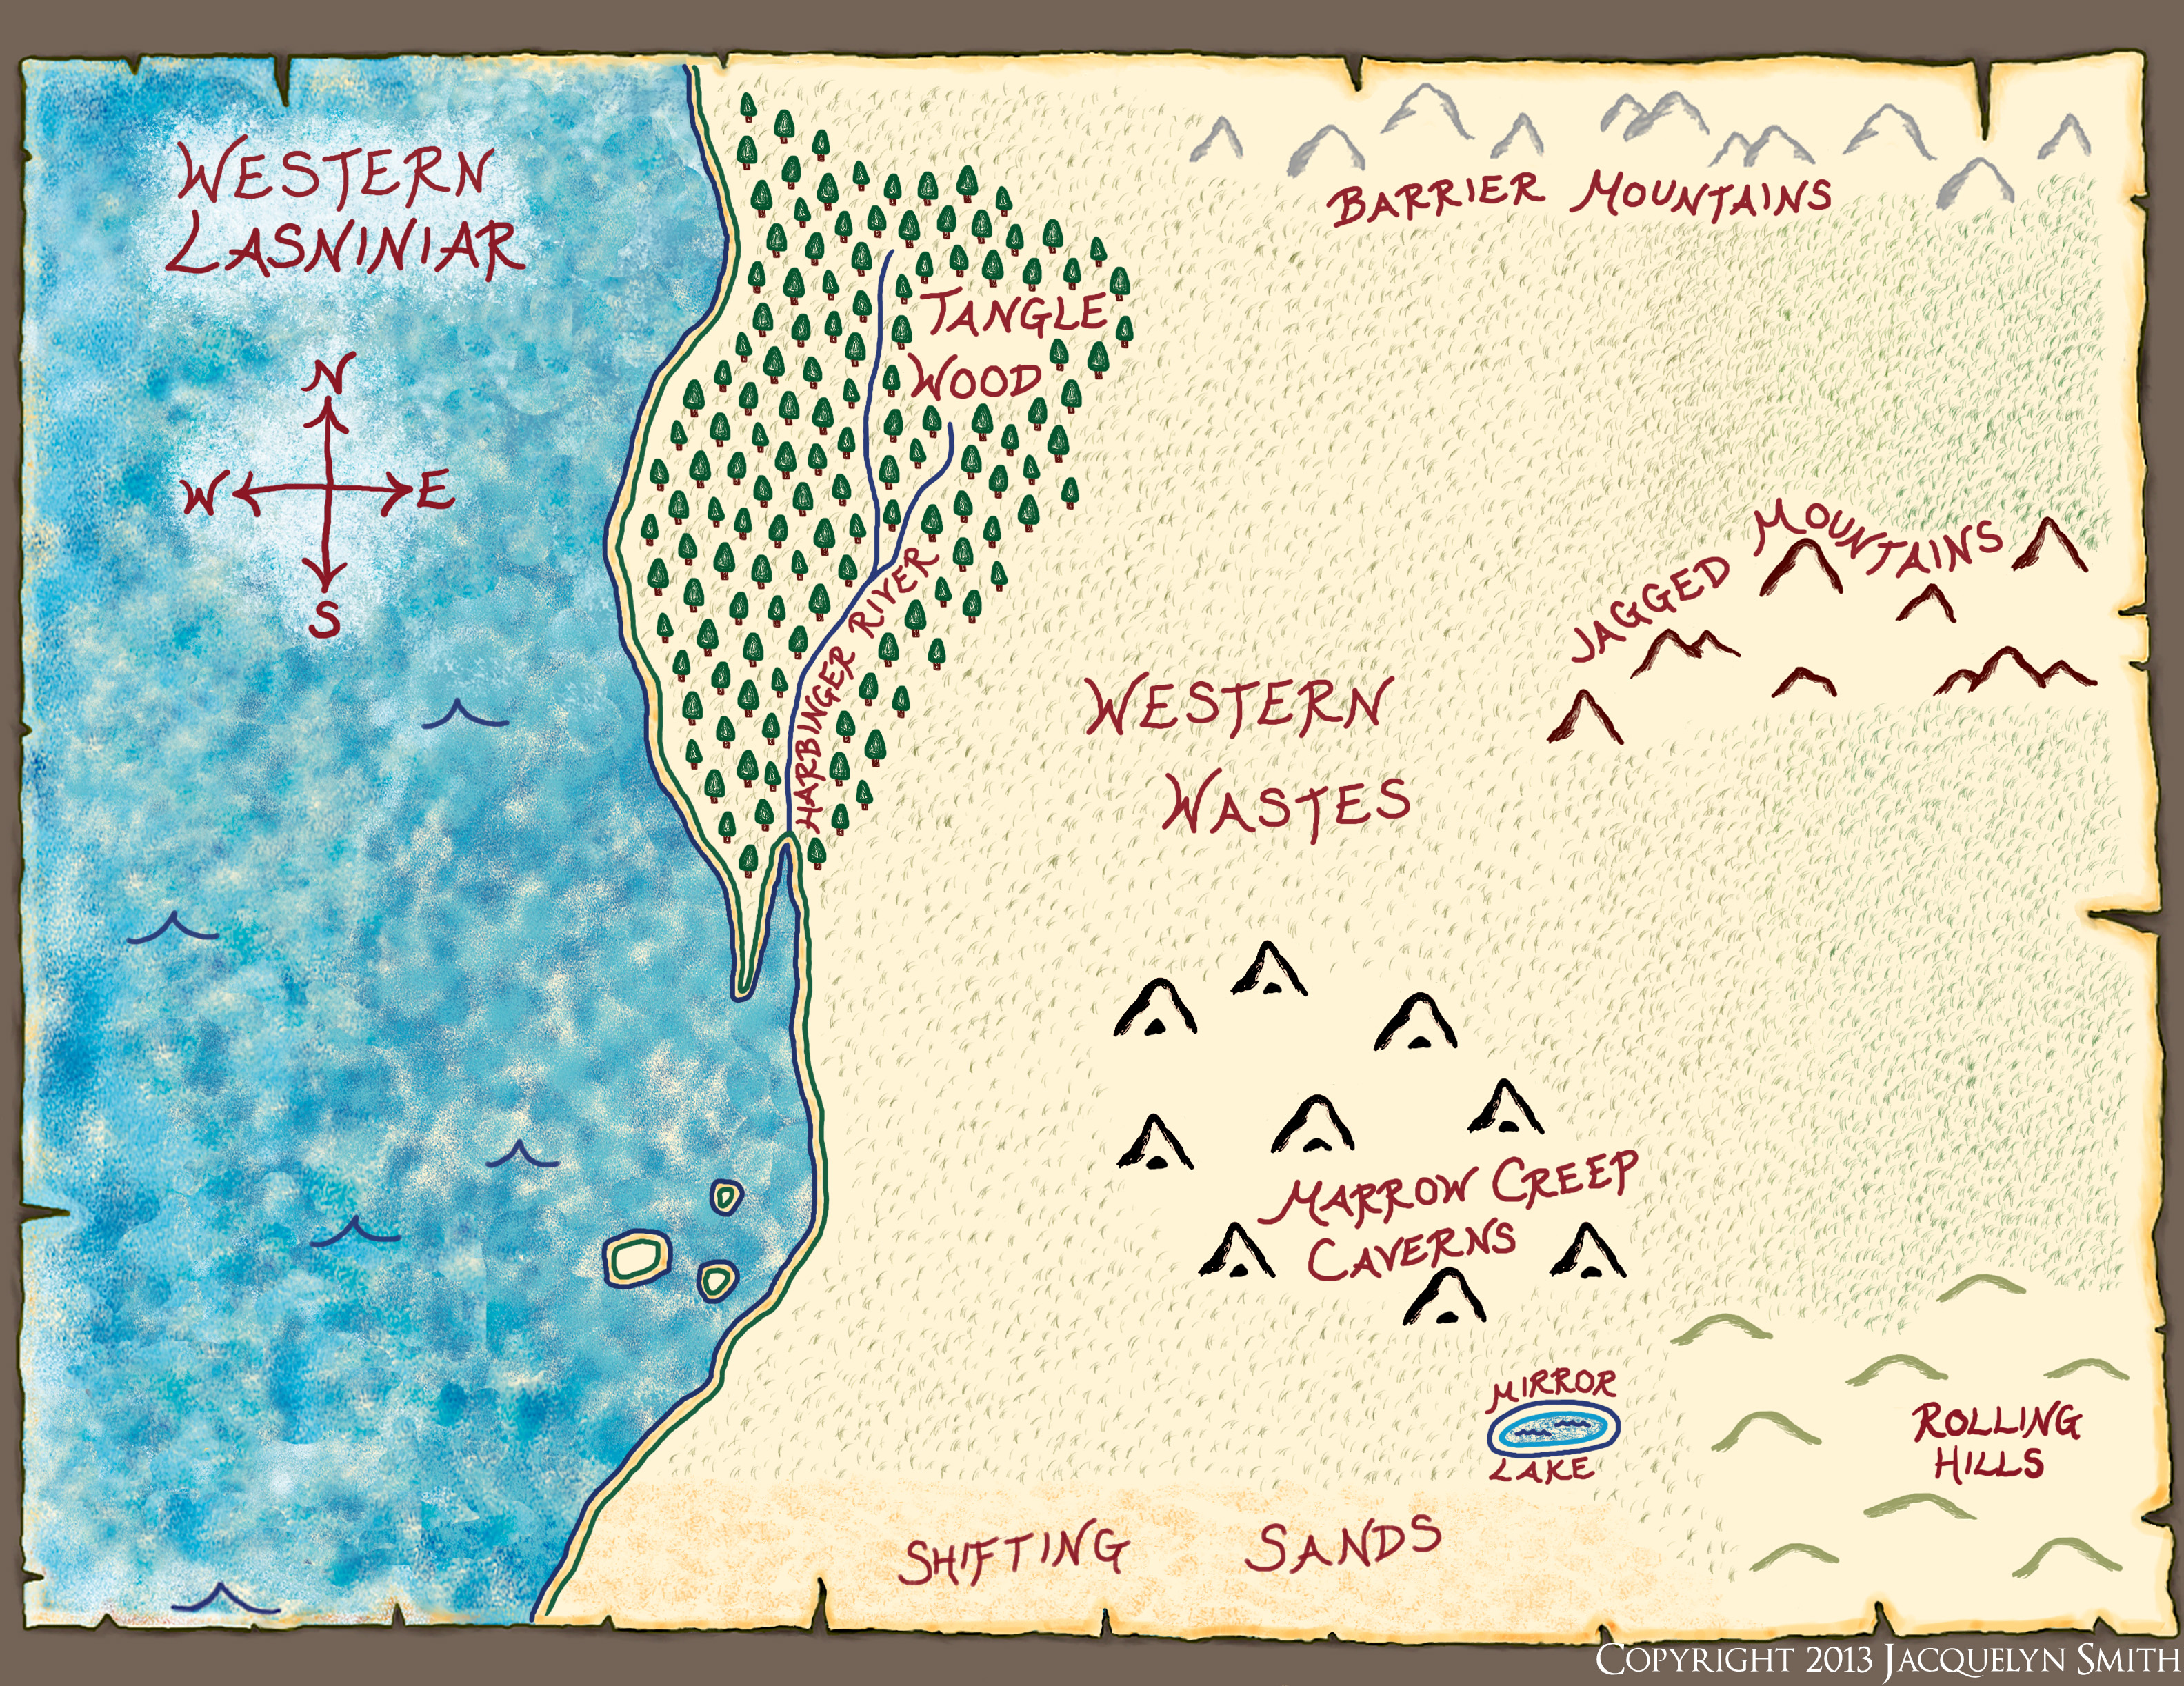 Northern Lasniniar map